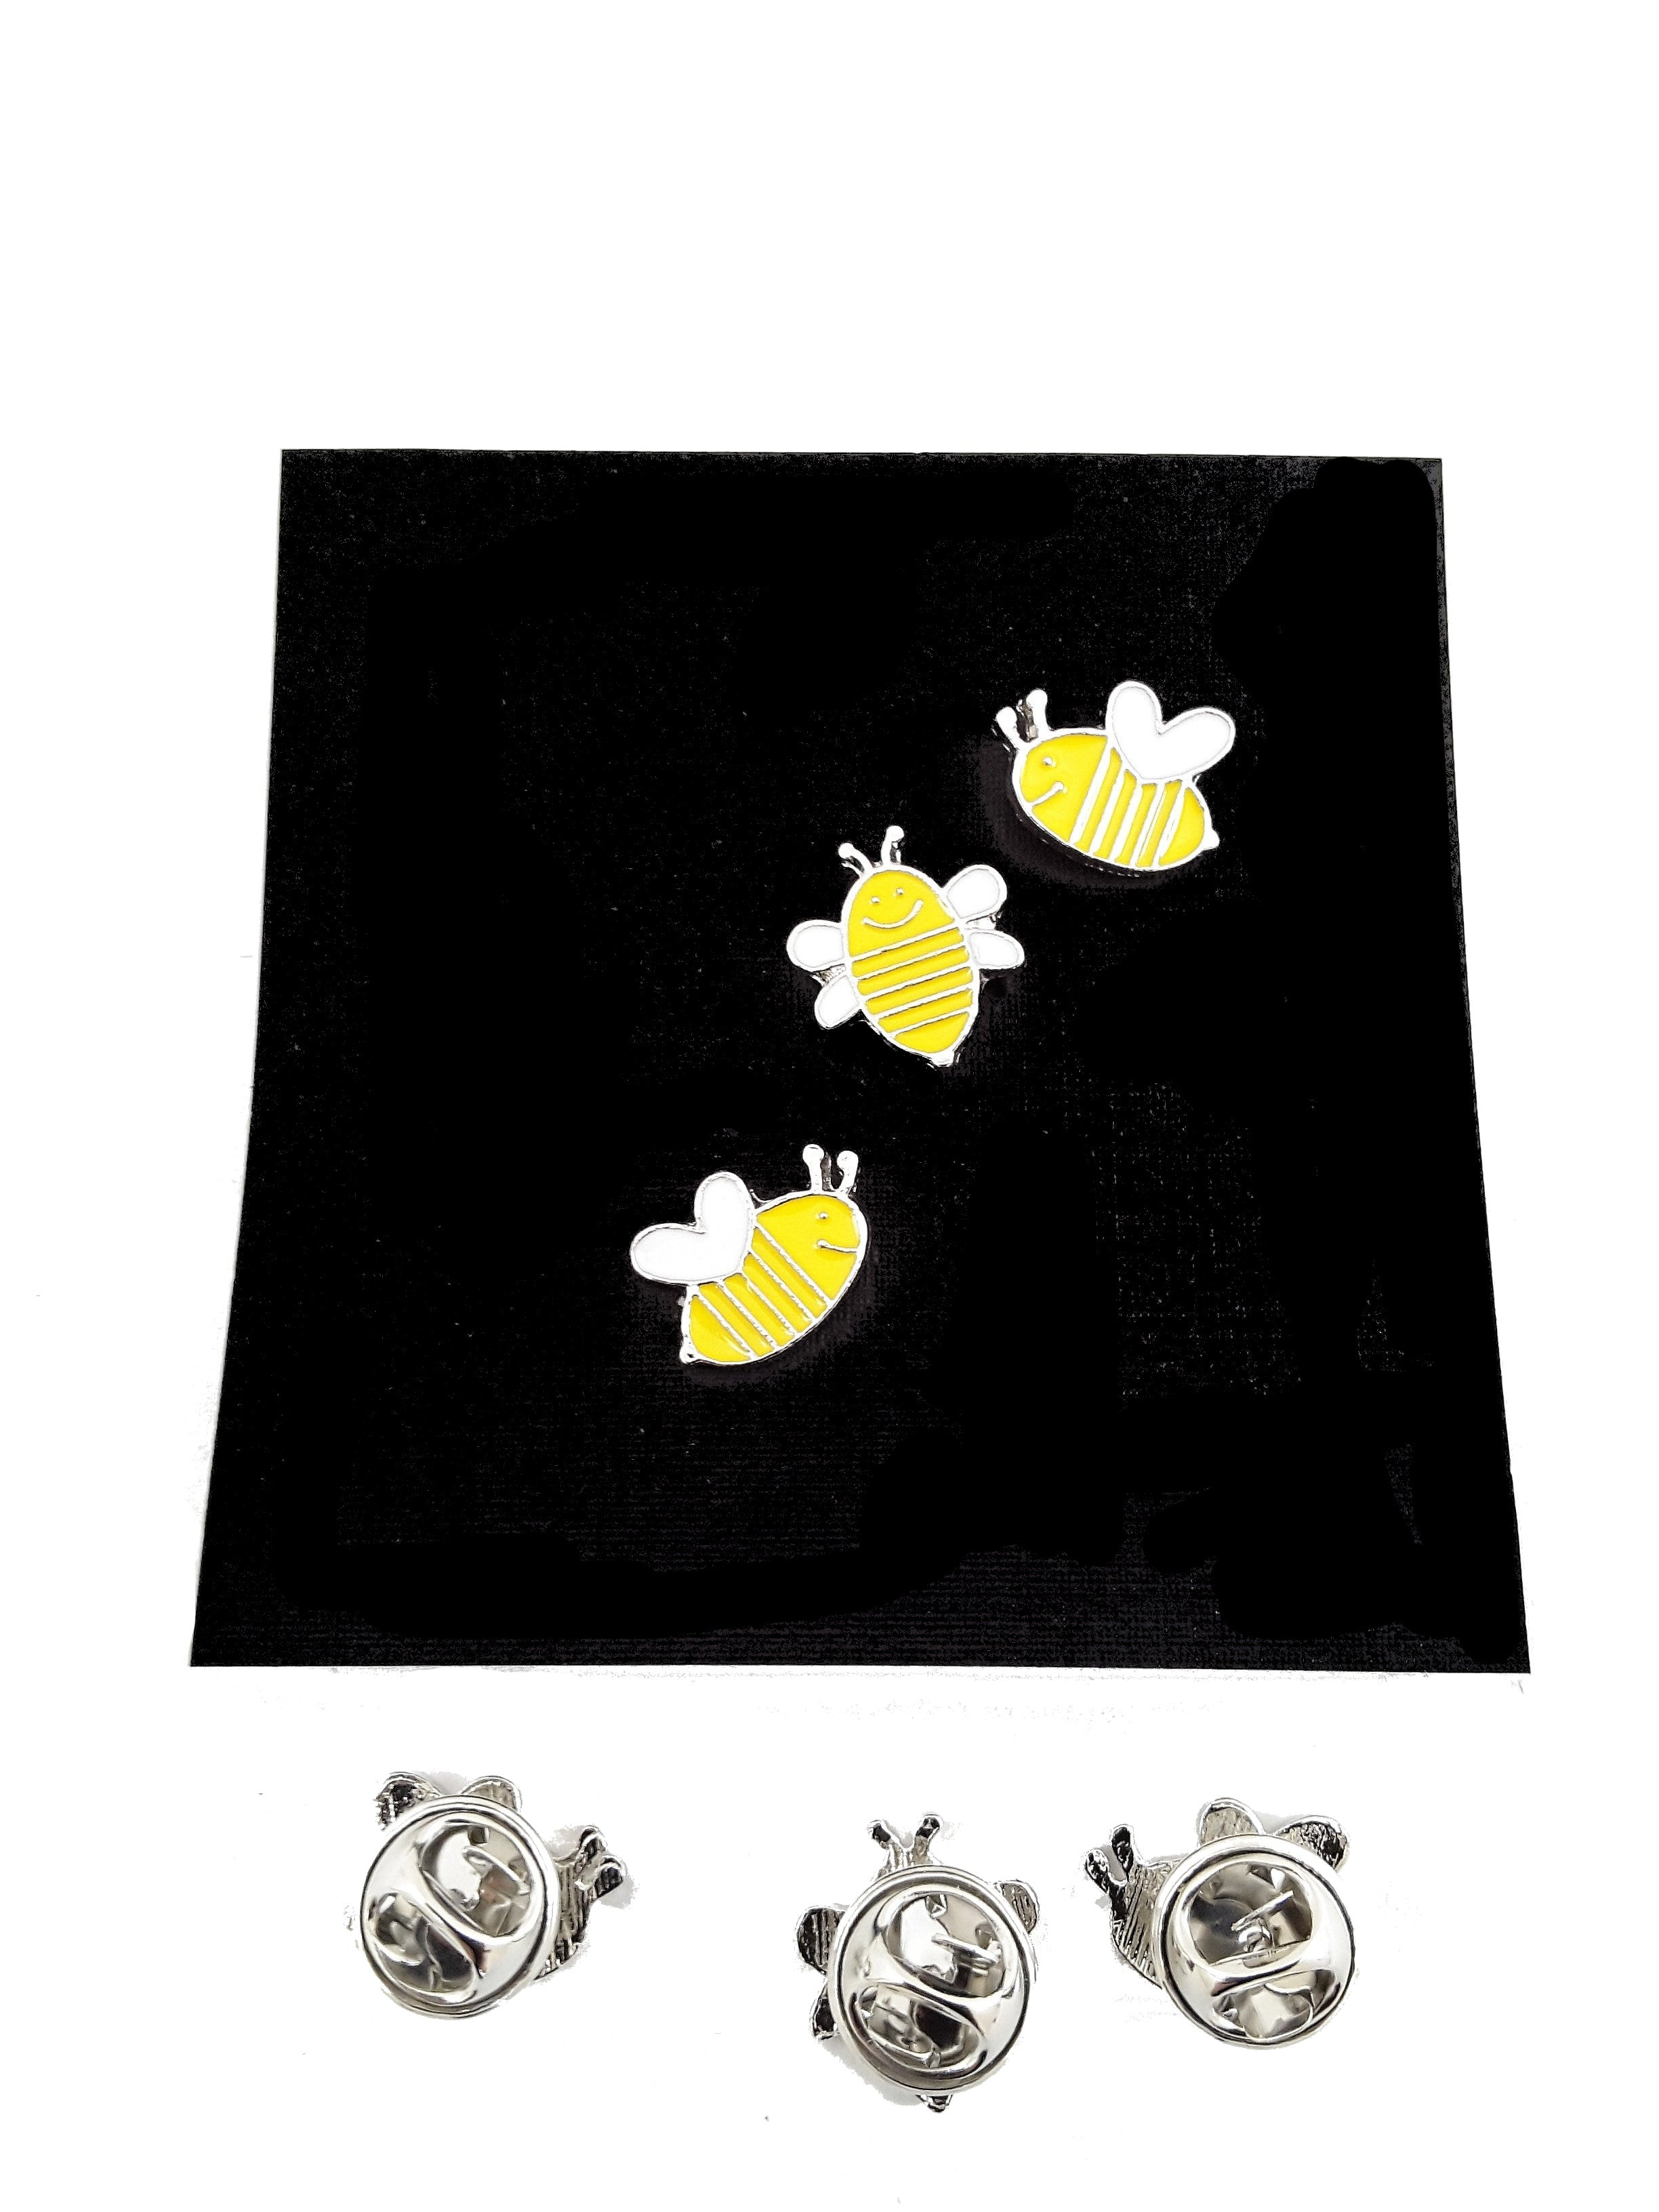 Bumble Bee Family 3-Piece Enamel Pin Set - free shipping! - TheLastWordBish.com